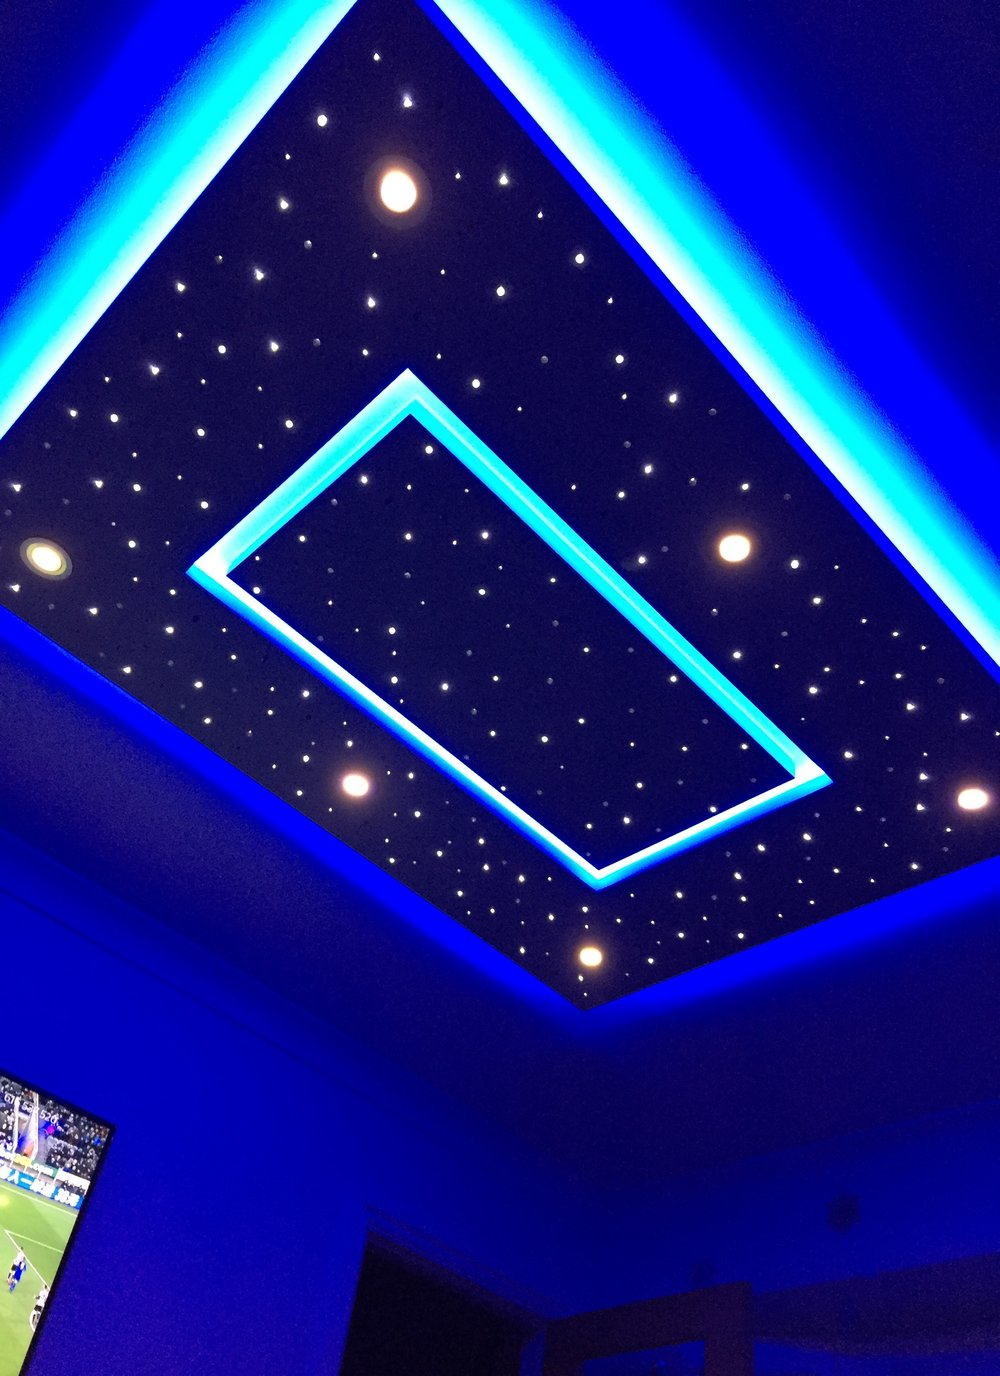 Star ceiling in living room, edge lighting set to blue